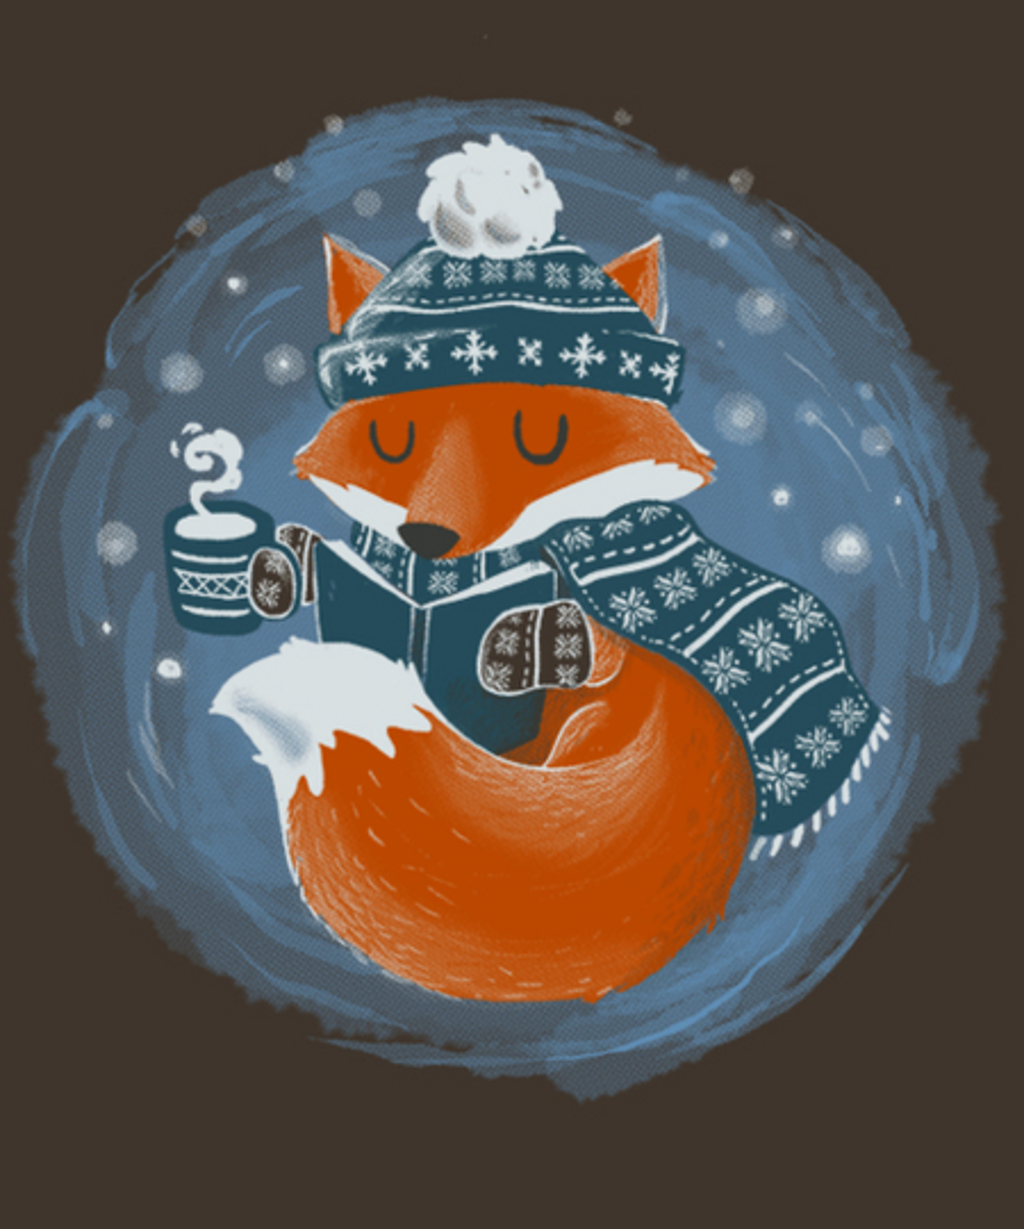 Qwertee: All I want for this winter!